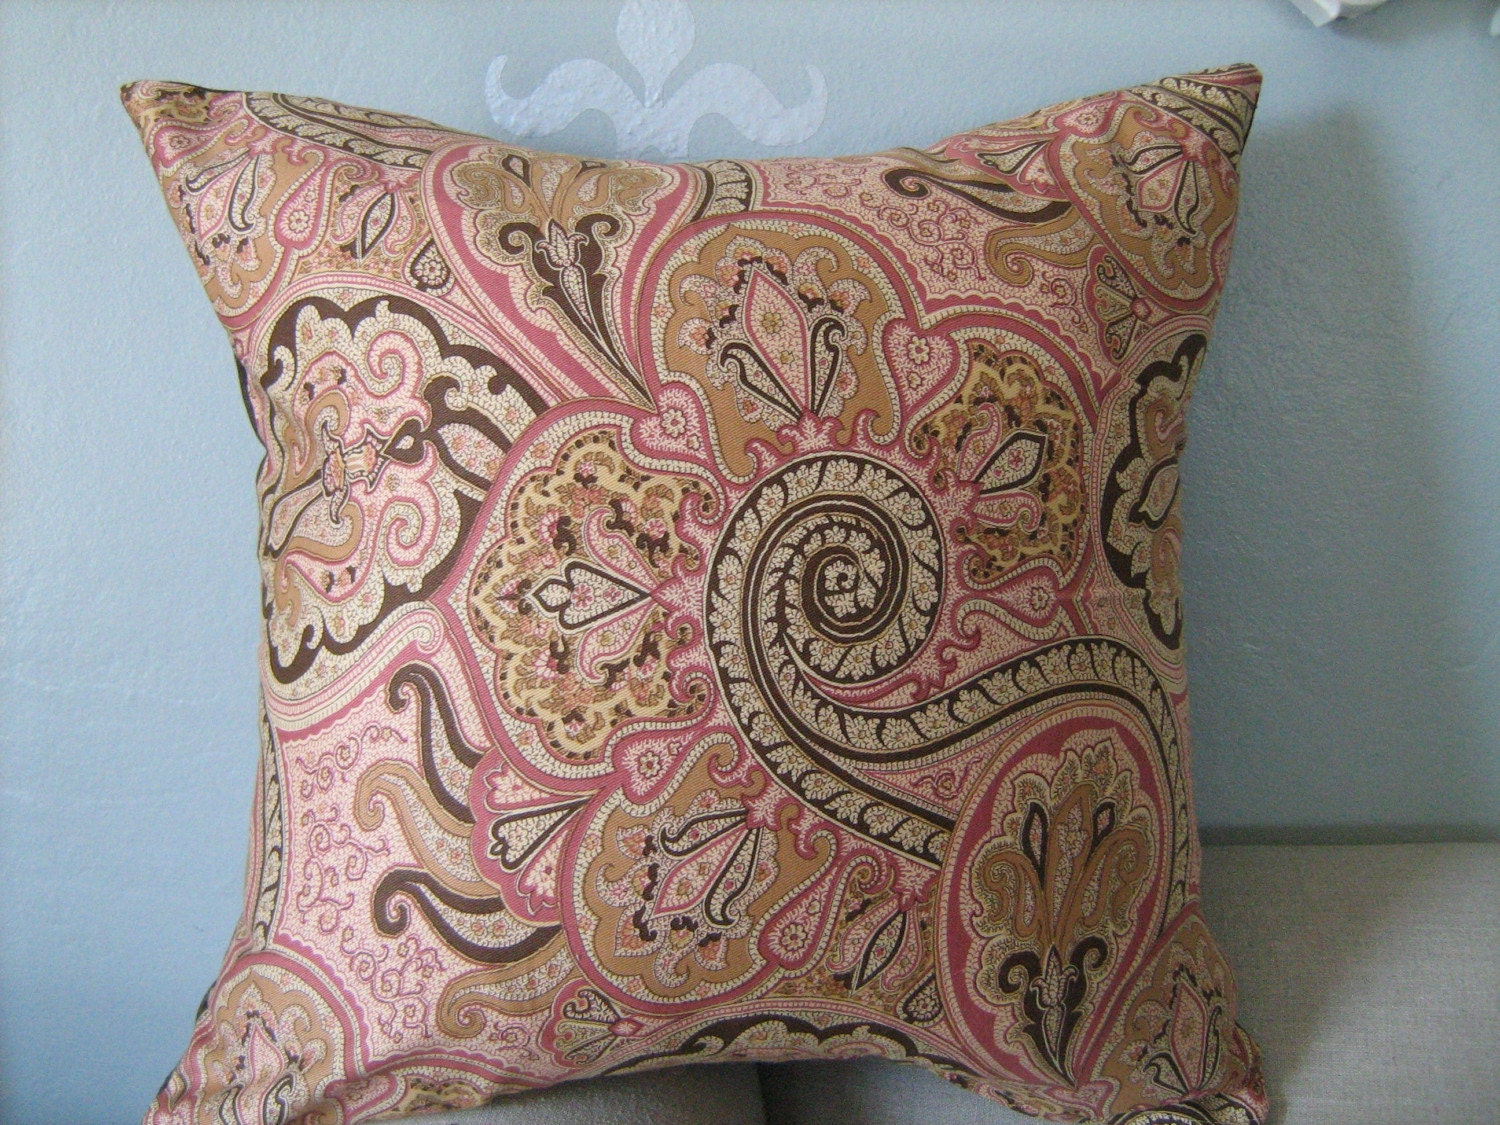 sale pink and brown paisley pillow cover 16x16 by dedeetsyshop. Black Bedroom Furniture Sets. Home Design Ideas